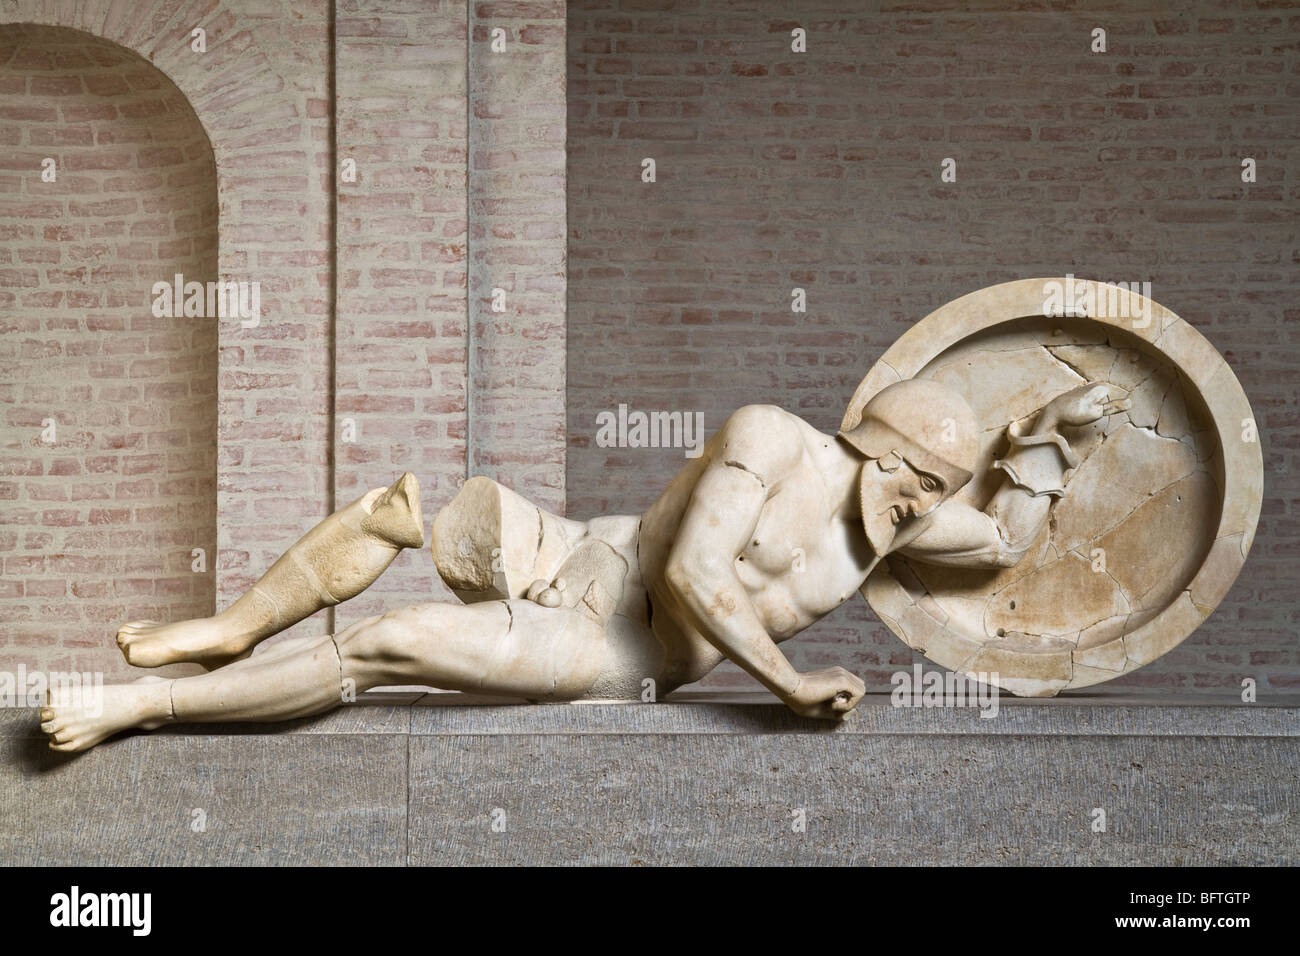 Dying warrior from the east pediment of the Temple of Aphaia at Aegina, ca. 480 BC. Depiction of the Trojan war. - Stock Image